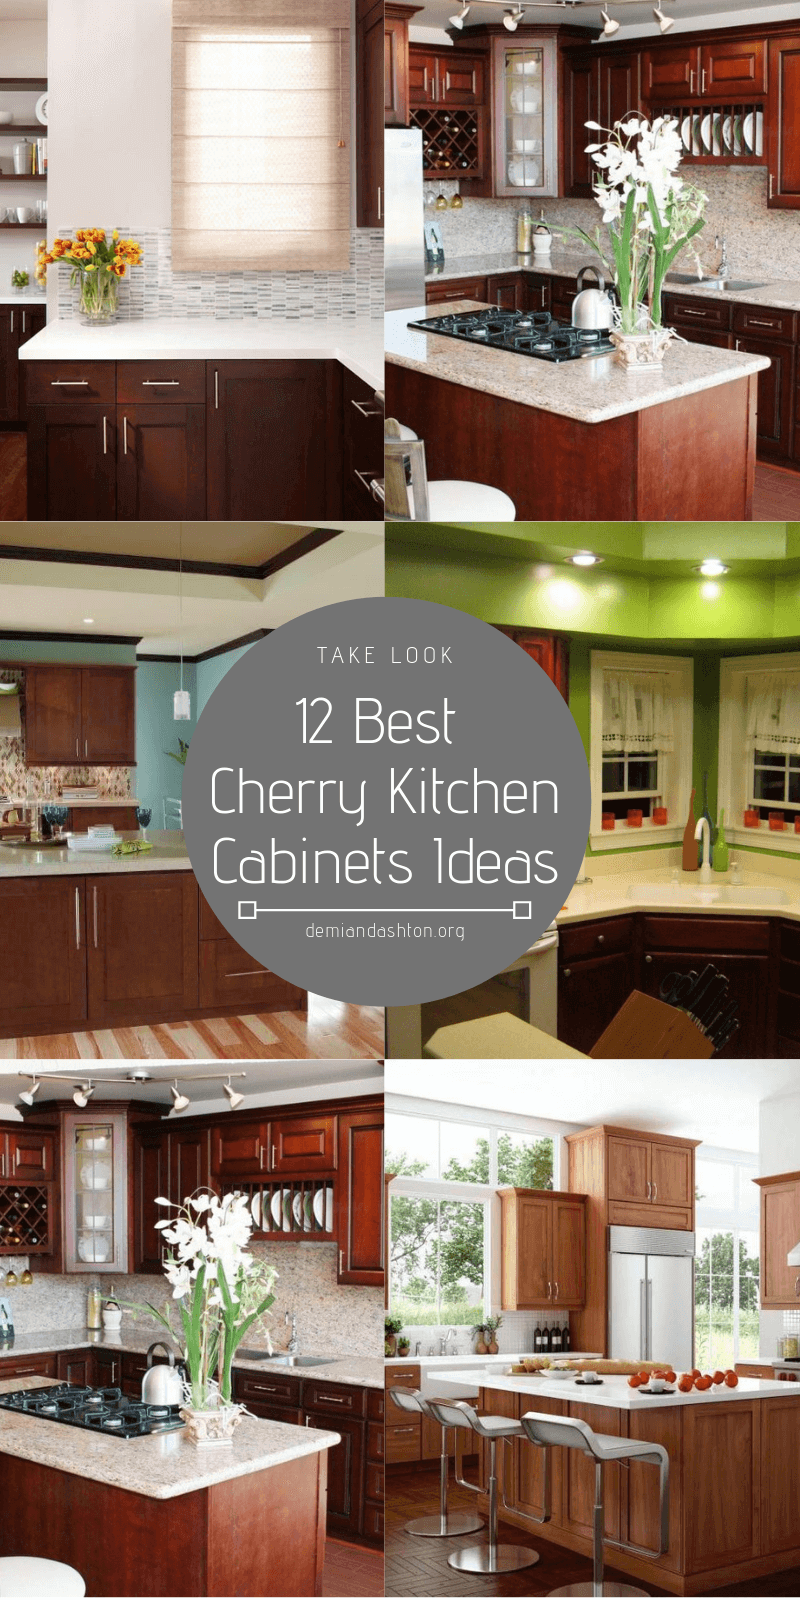 cherry kitchen cabinets for sale are beautiful and ideally ...